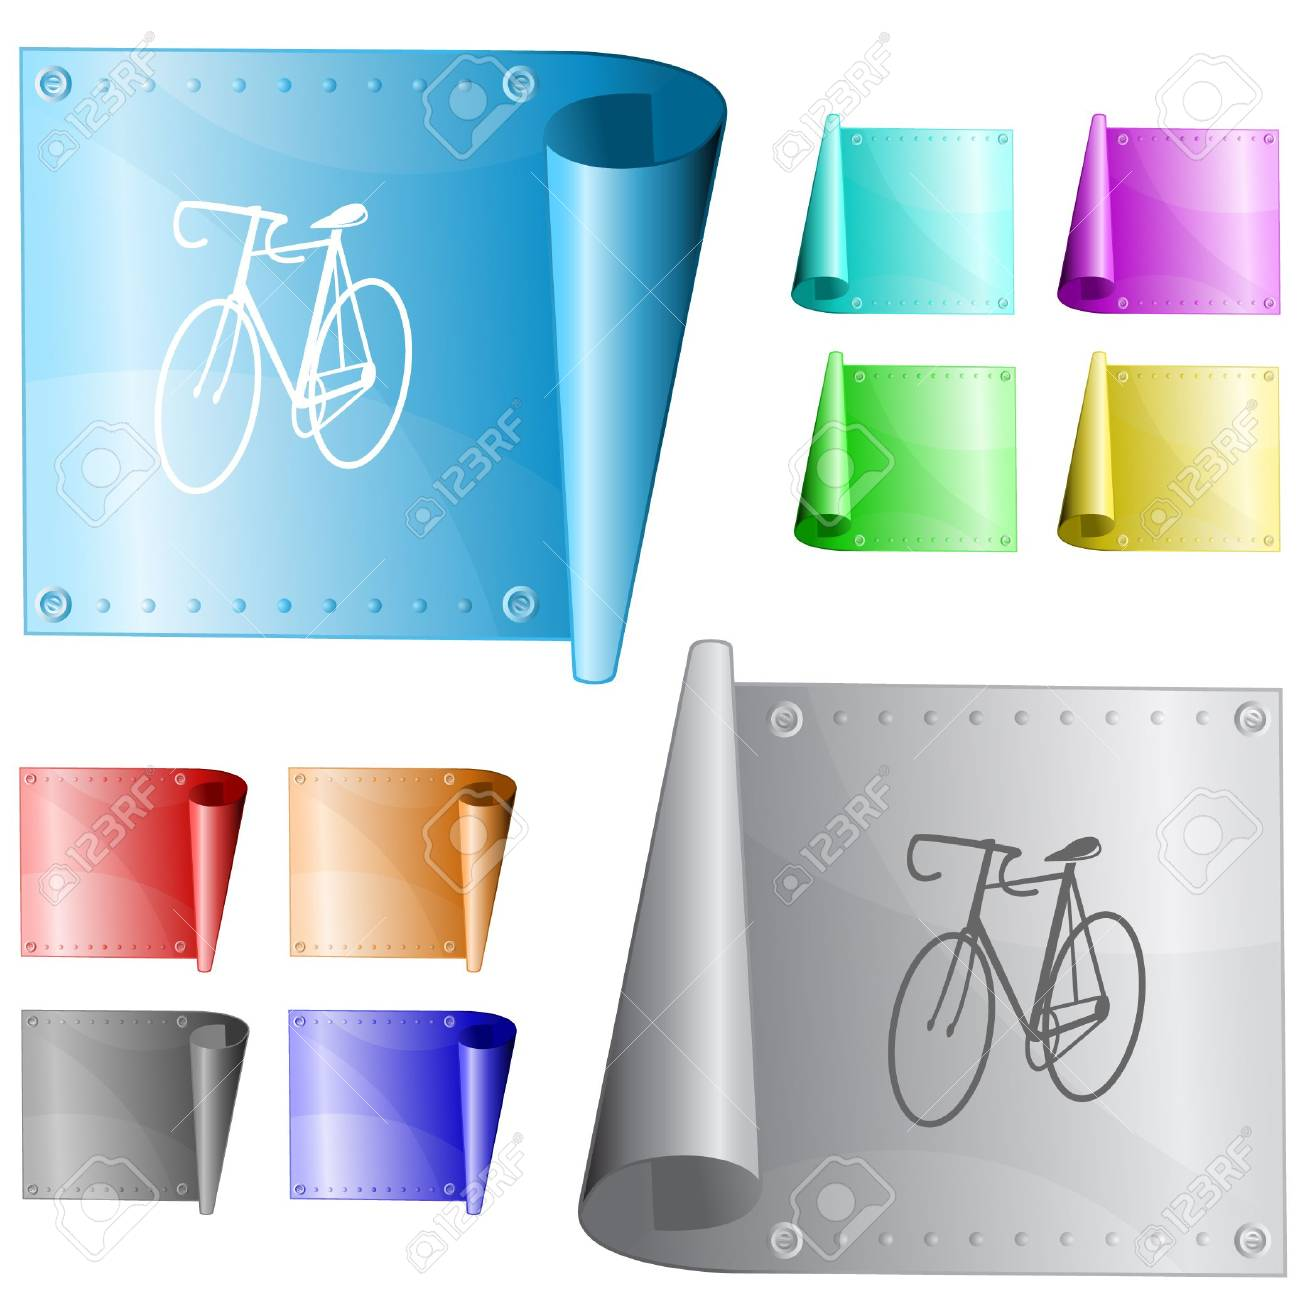 Bicycle.  metal surface. Stock Vector - 6731646